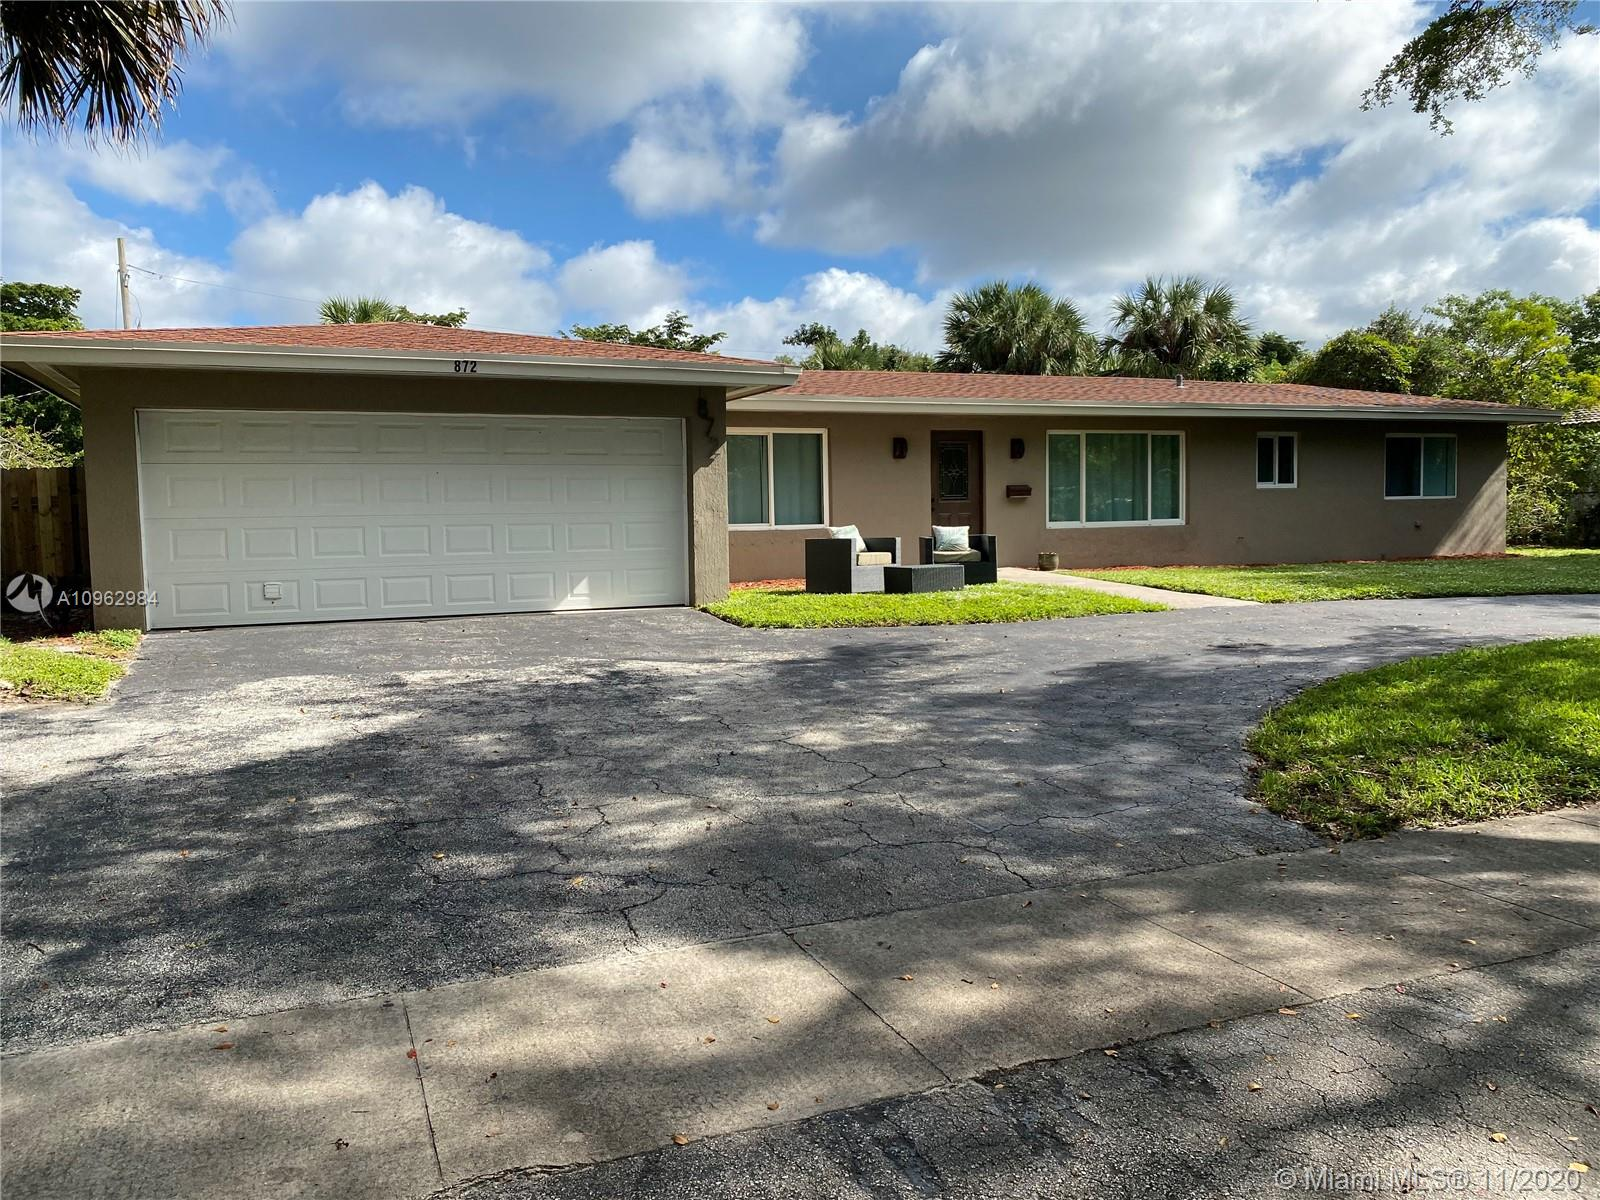 Beautiful property in the heart of Plantation, completely renovated on a 13,750 square foot lot, great for entertaining, 4 bedroom 2 1/2 bath, new kitchen cabinets, modern marble counter tops, tile floors, upgraded bathrooms, New roof, new A/C. Plenty of living space, it also has a separate in-laws suite.